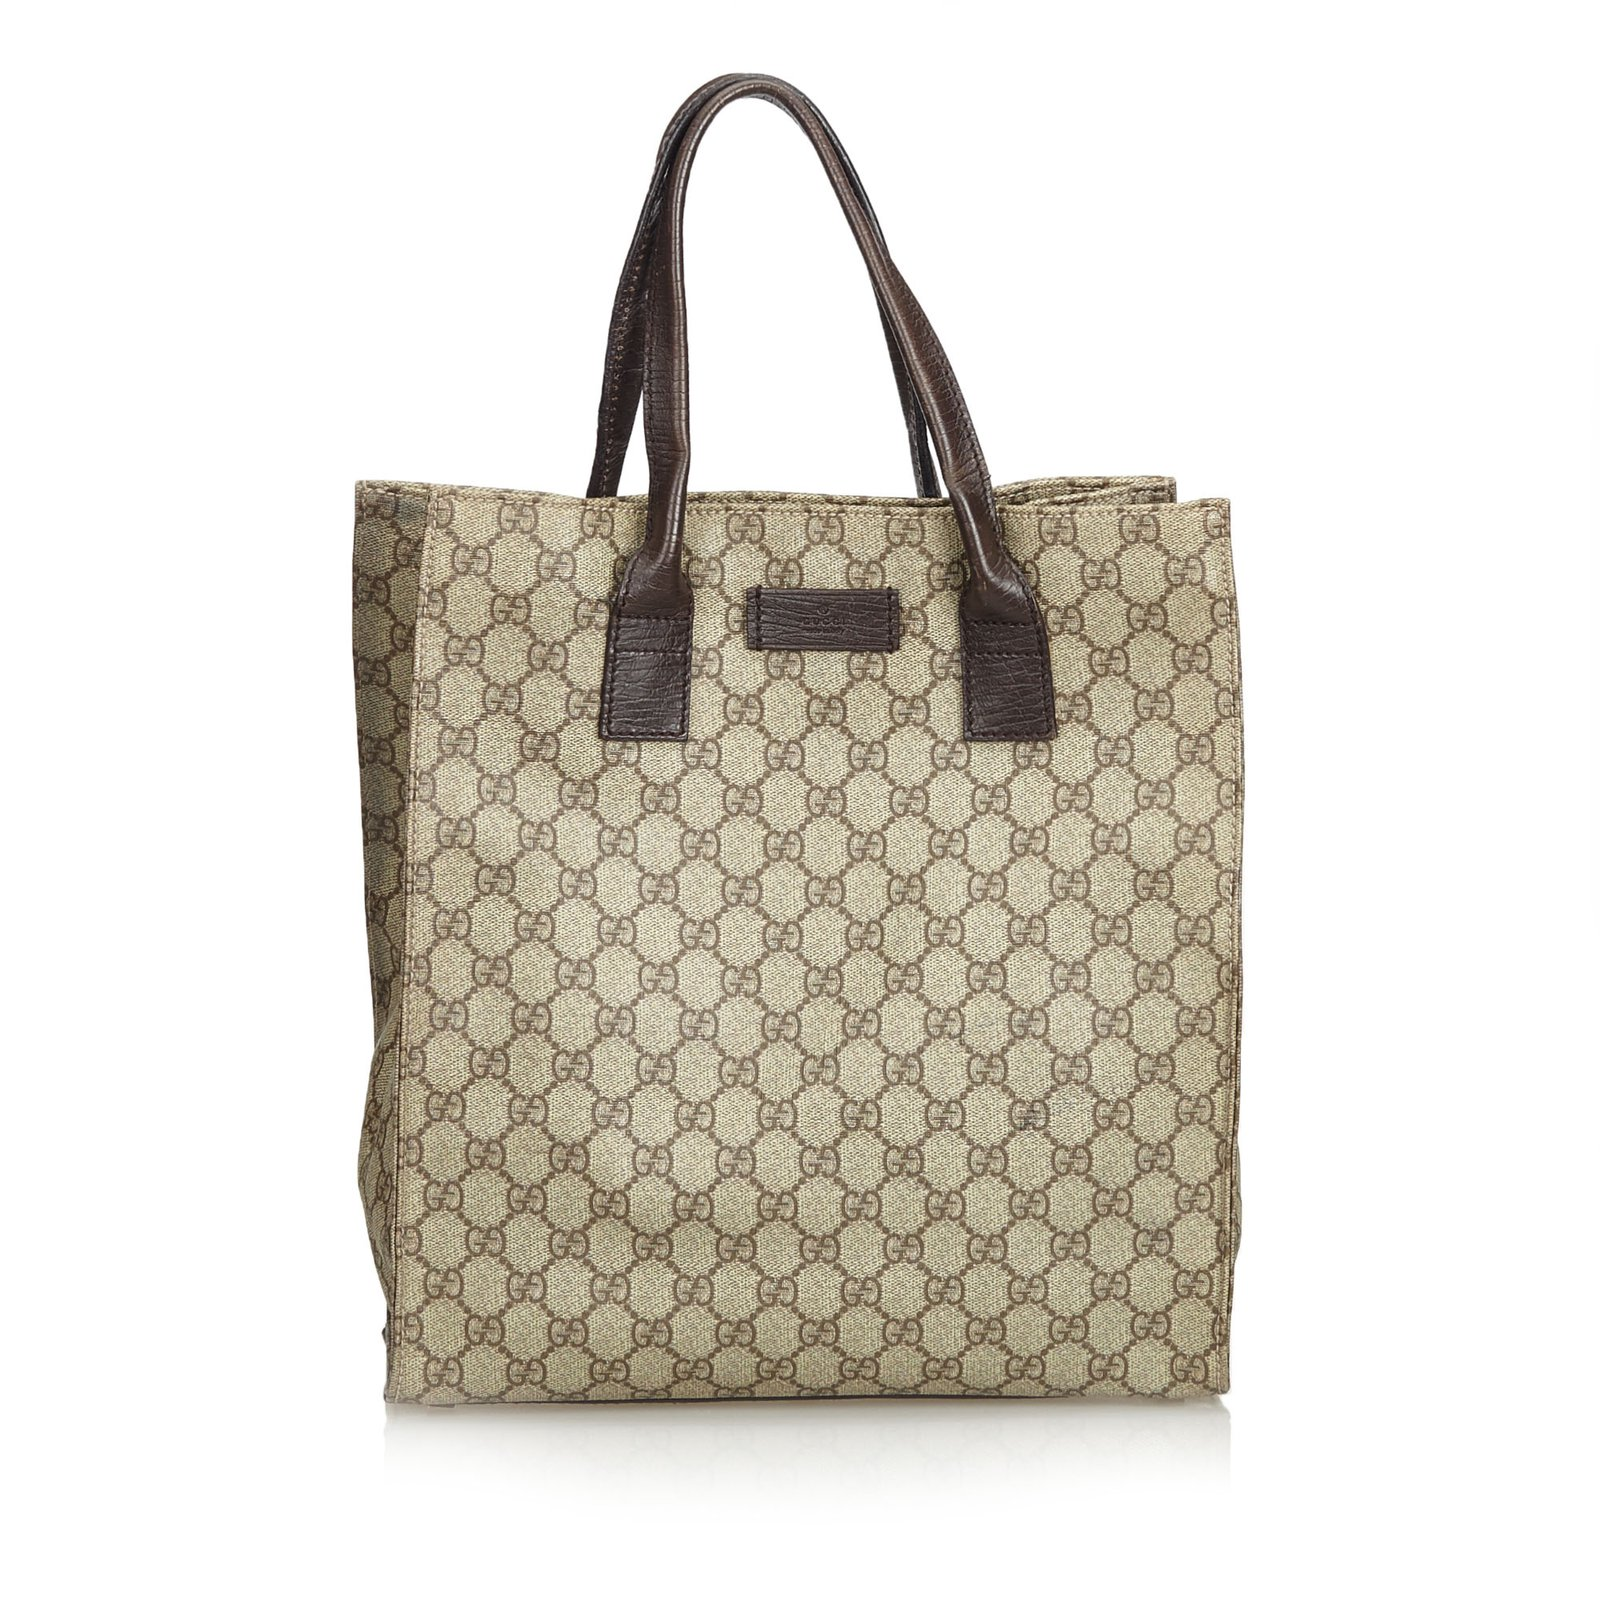 b58802624a76 Gucci GG Supreme Coated Canvas Tote Bag Totes Leather,Other,Cloth,Cloth  Brown